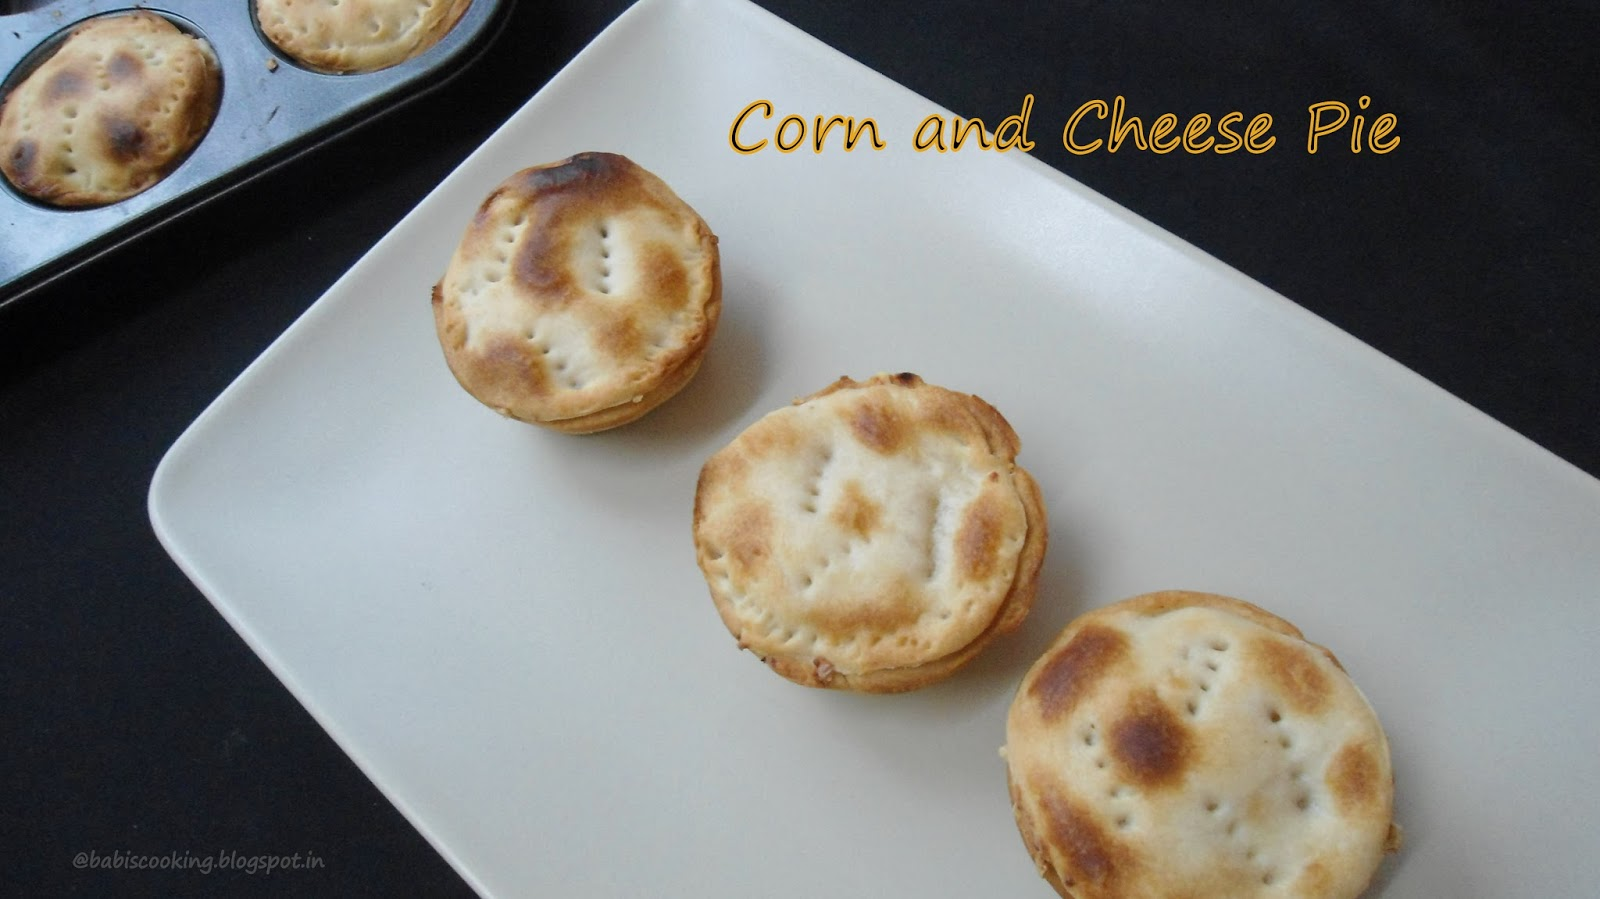 Corn and Cheese Pie | Savory Pie | Eggless Baking Group